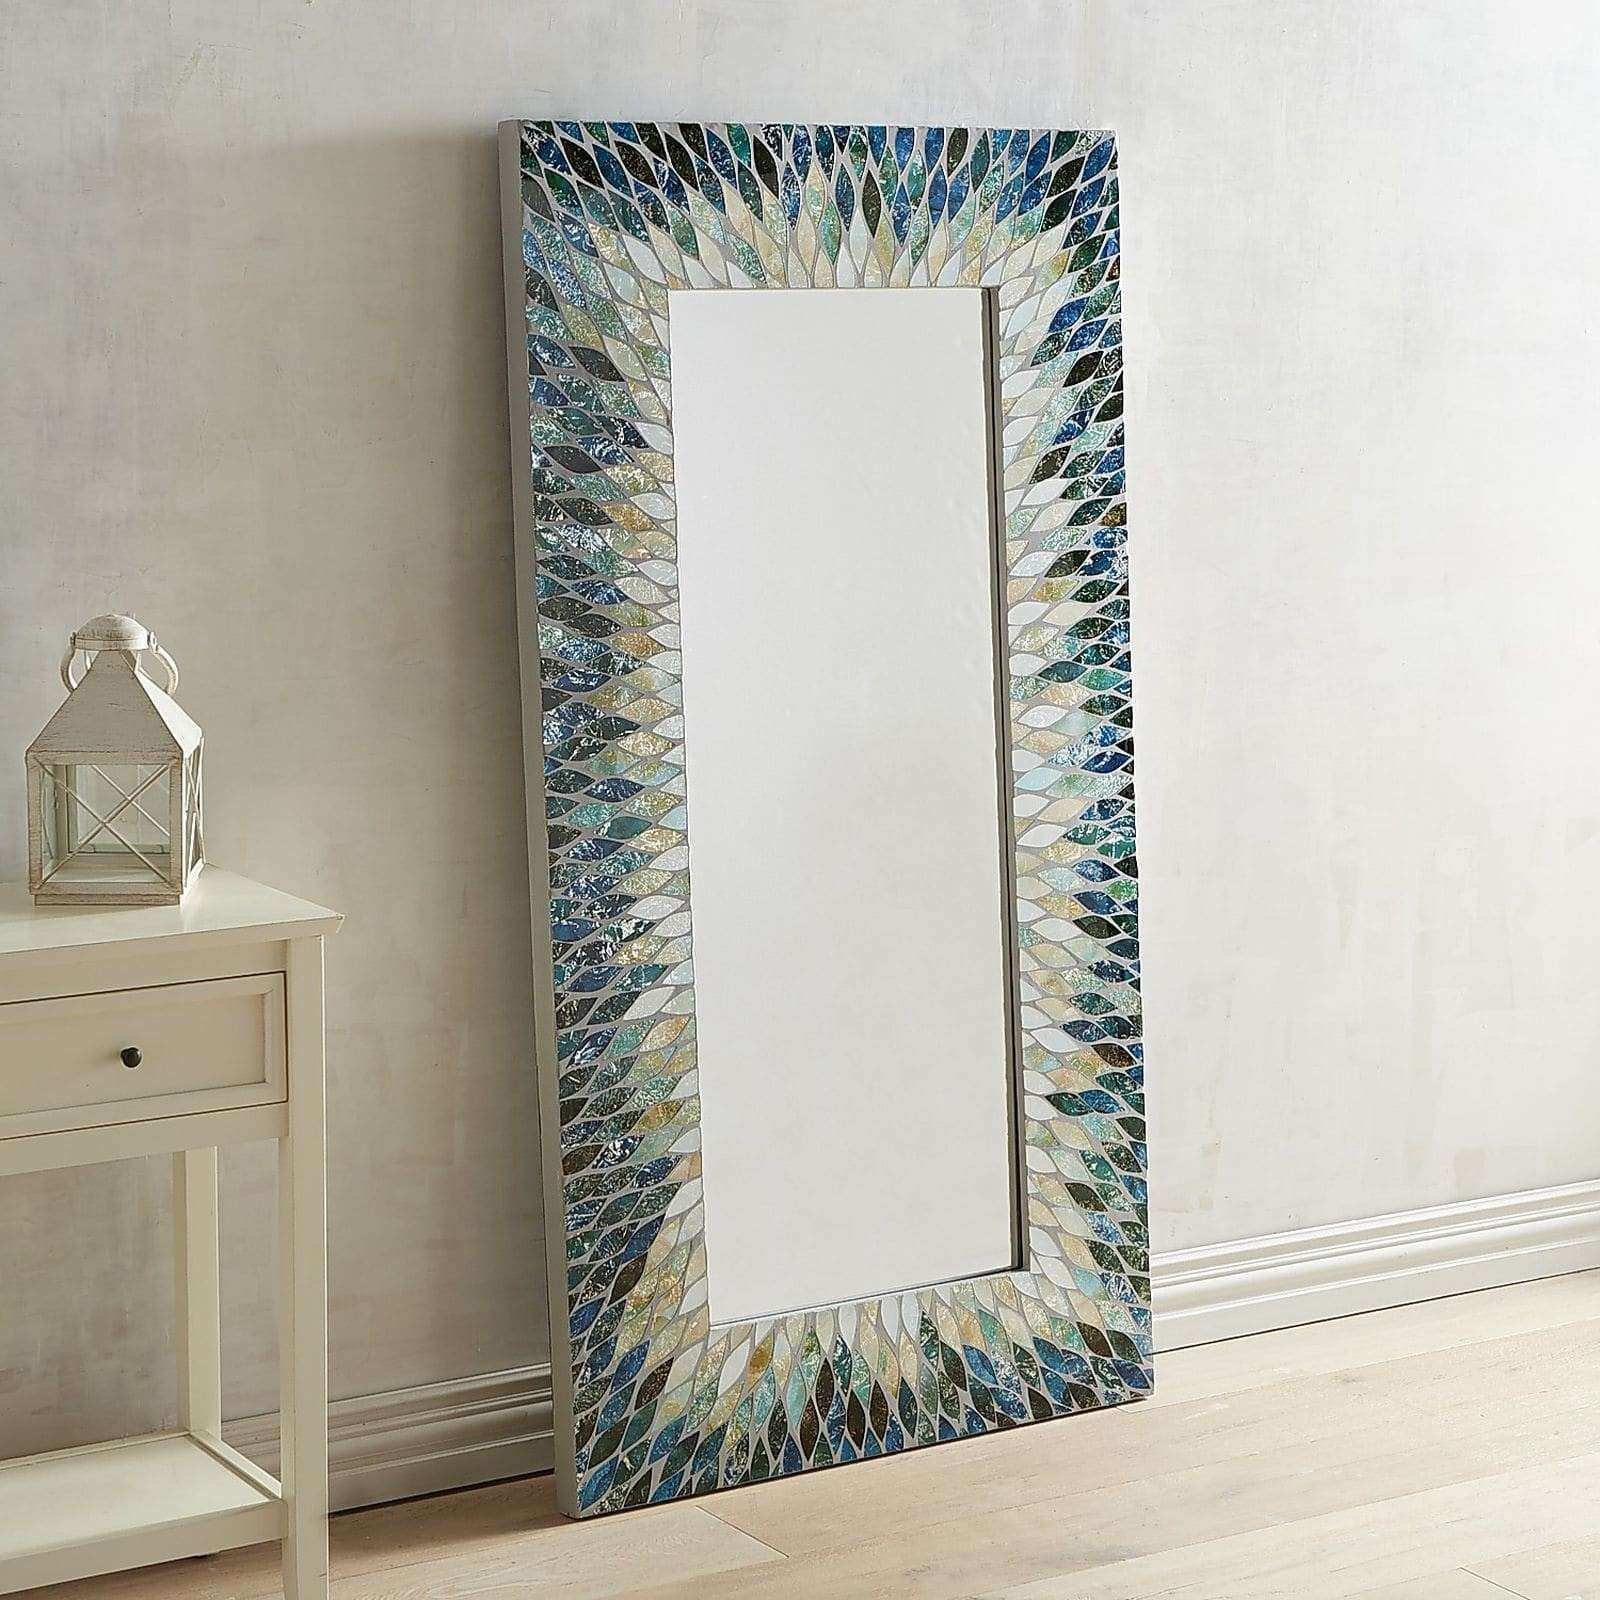 Pier One Mirrors and Wall Decor Unique Cascade Mosaic Floor Mirror ...